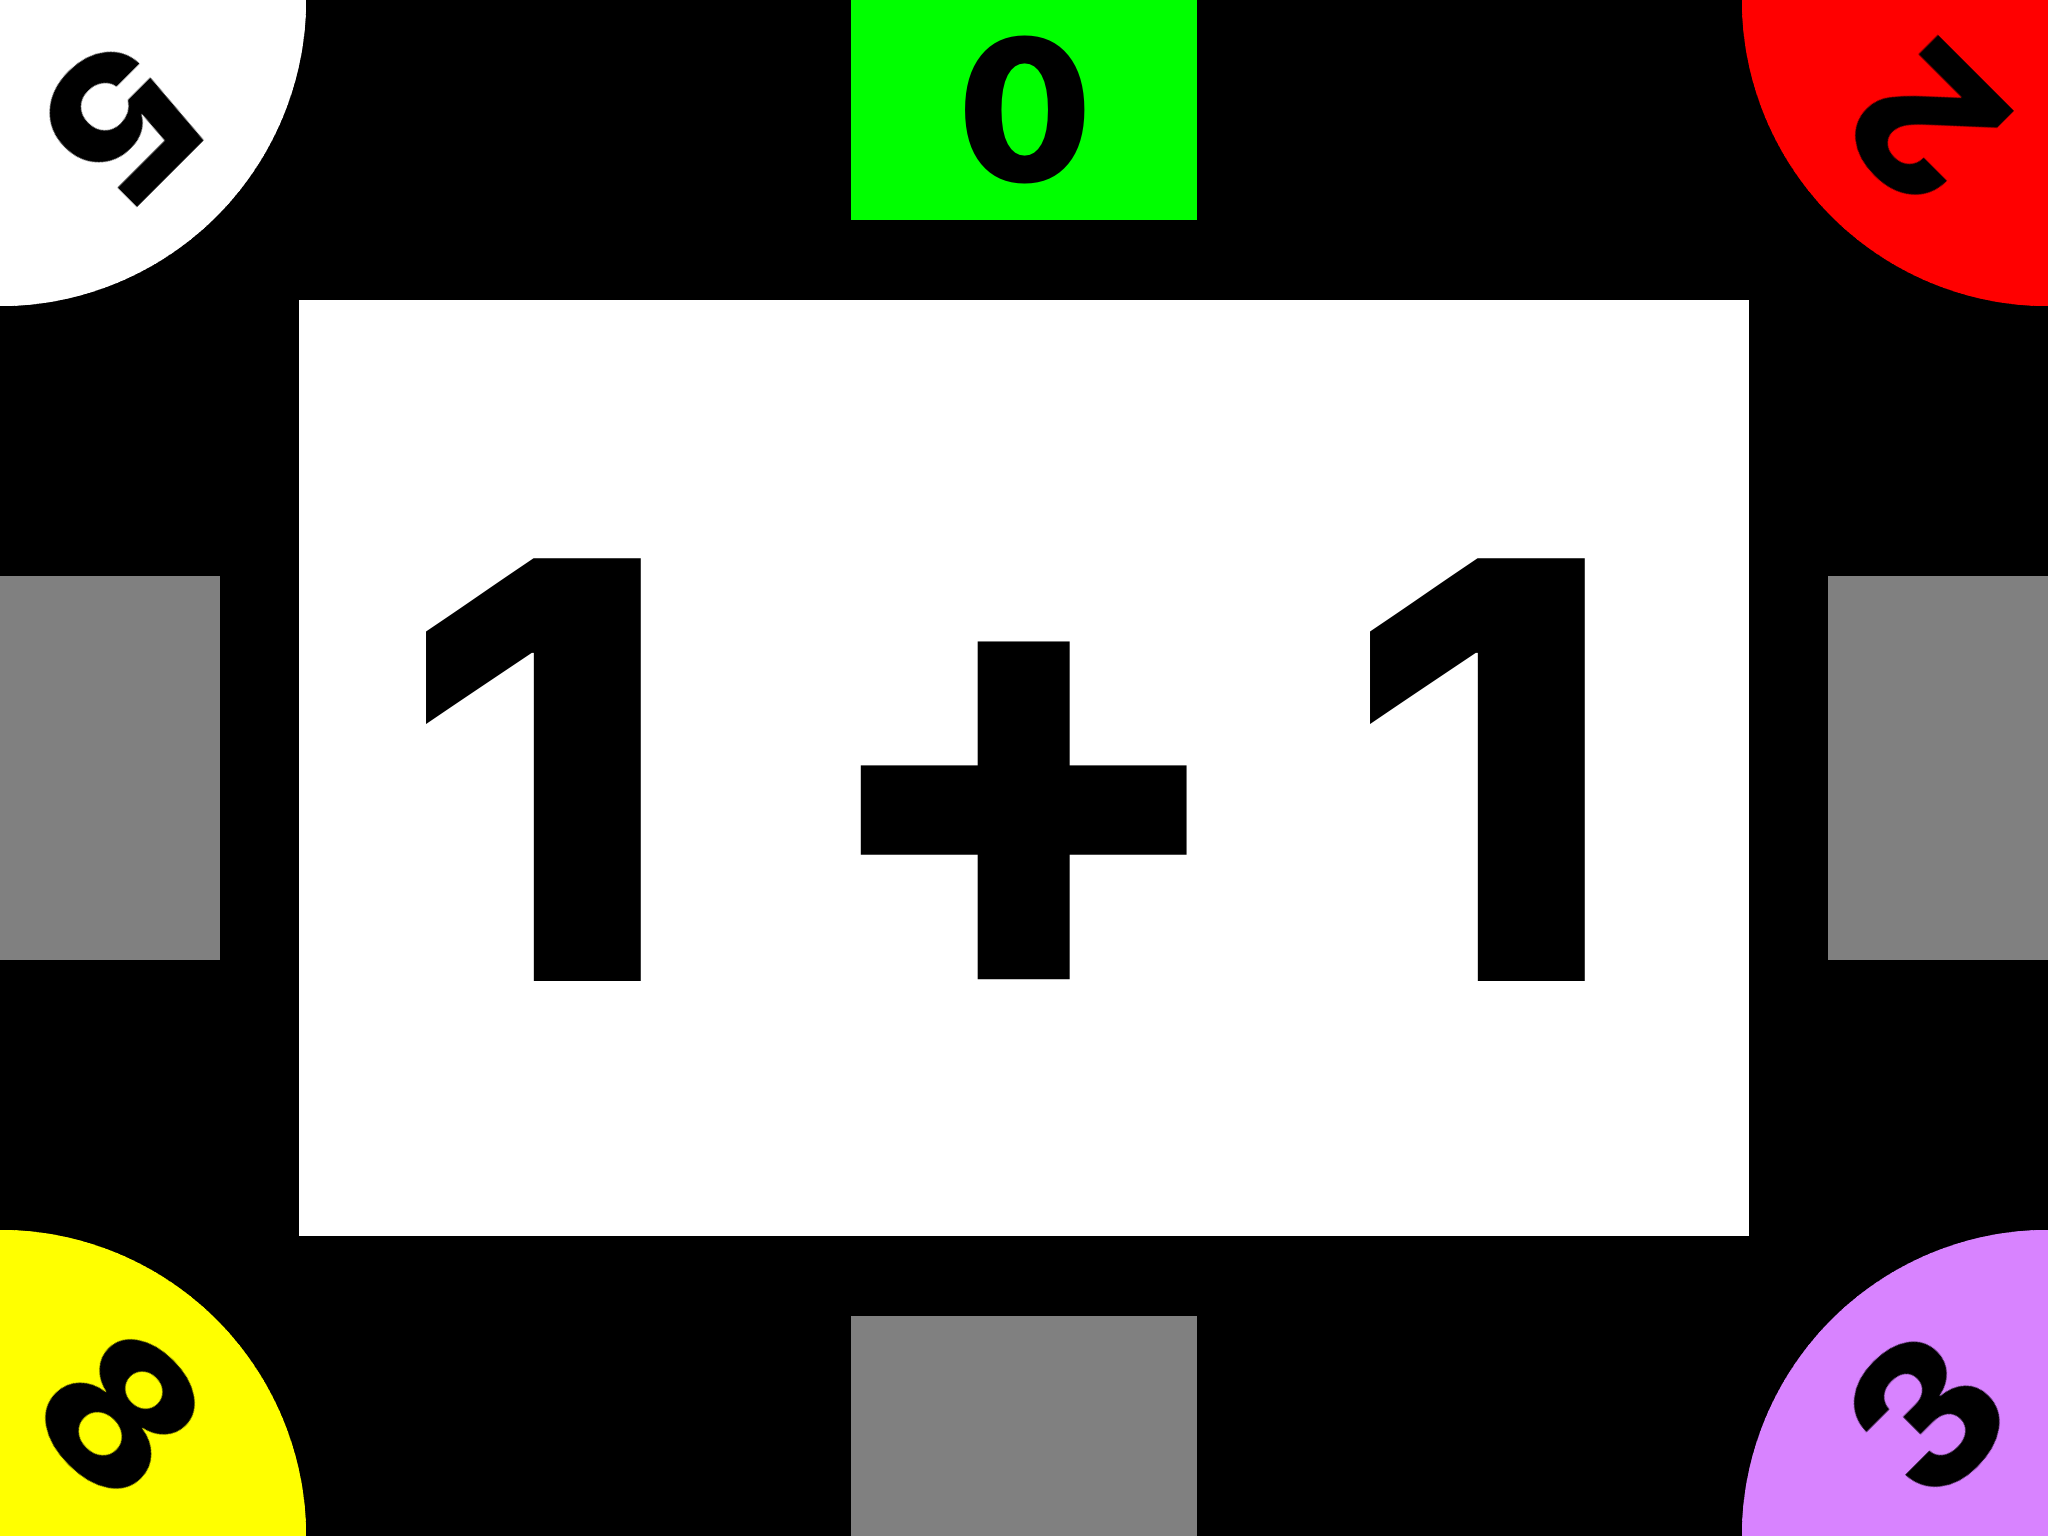 Slapstack Math screenshot displaying the addition card, 1+1 and 5 players ranging in scores from 0 - 8.